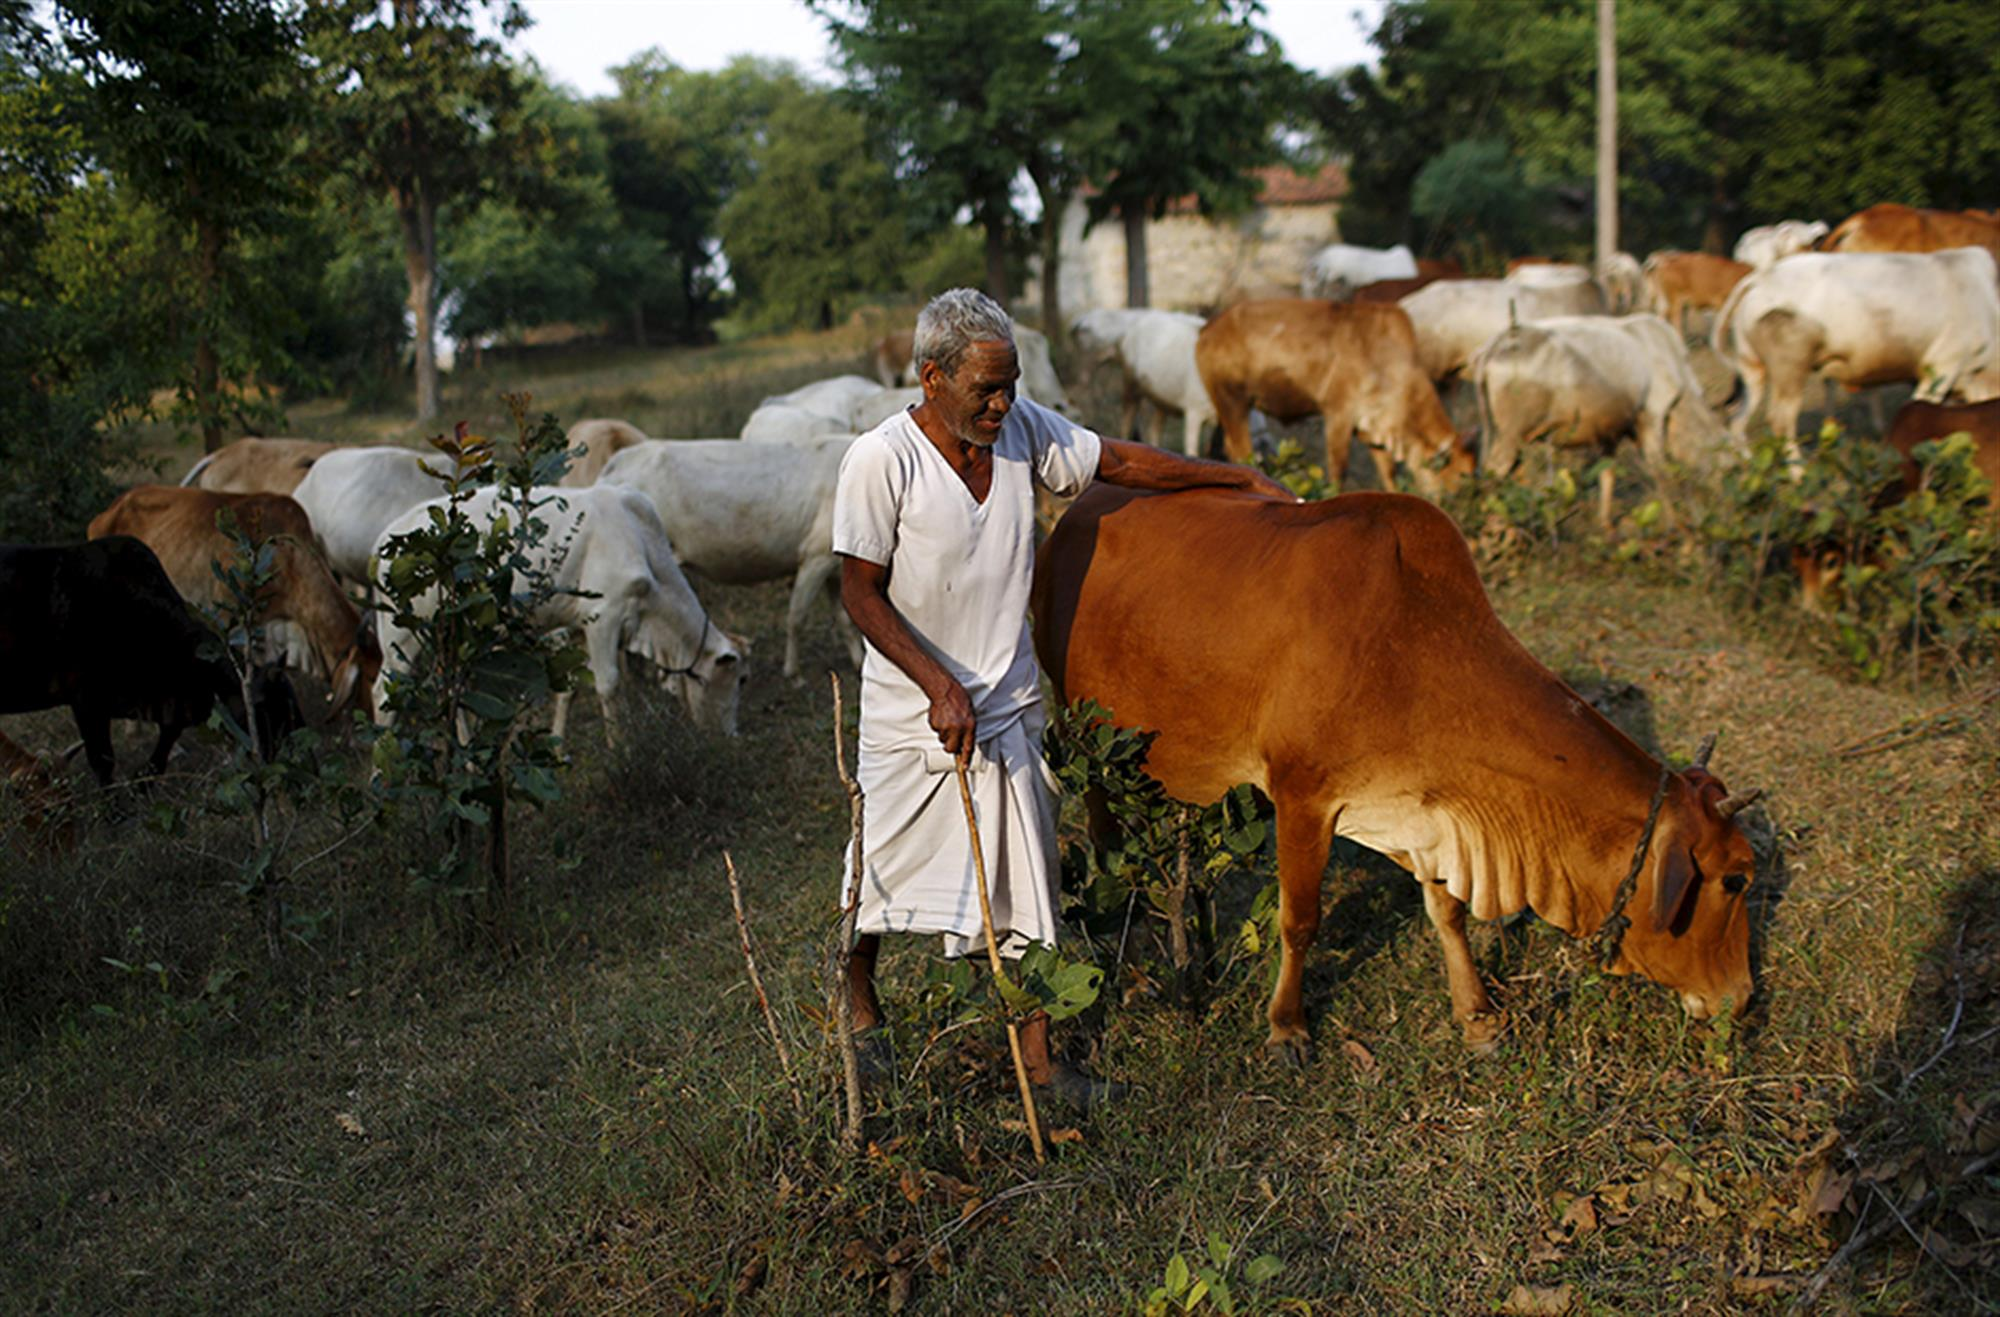 Whatever the BJP May Say, the Cost of 'Protecting' Cows Is High